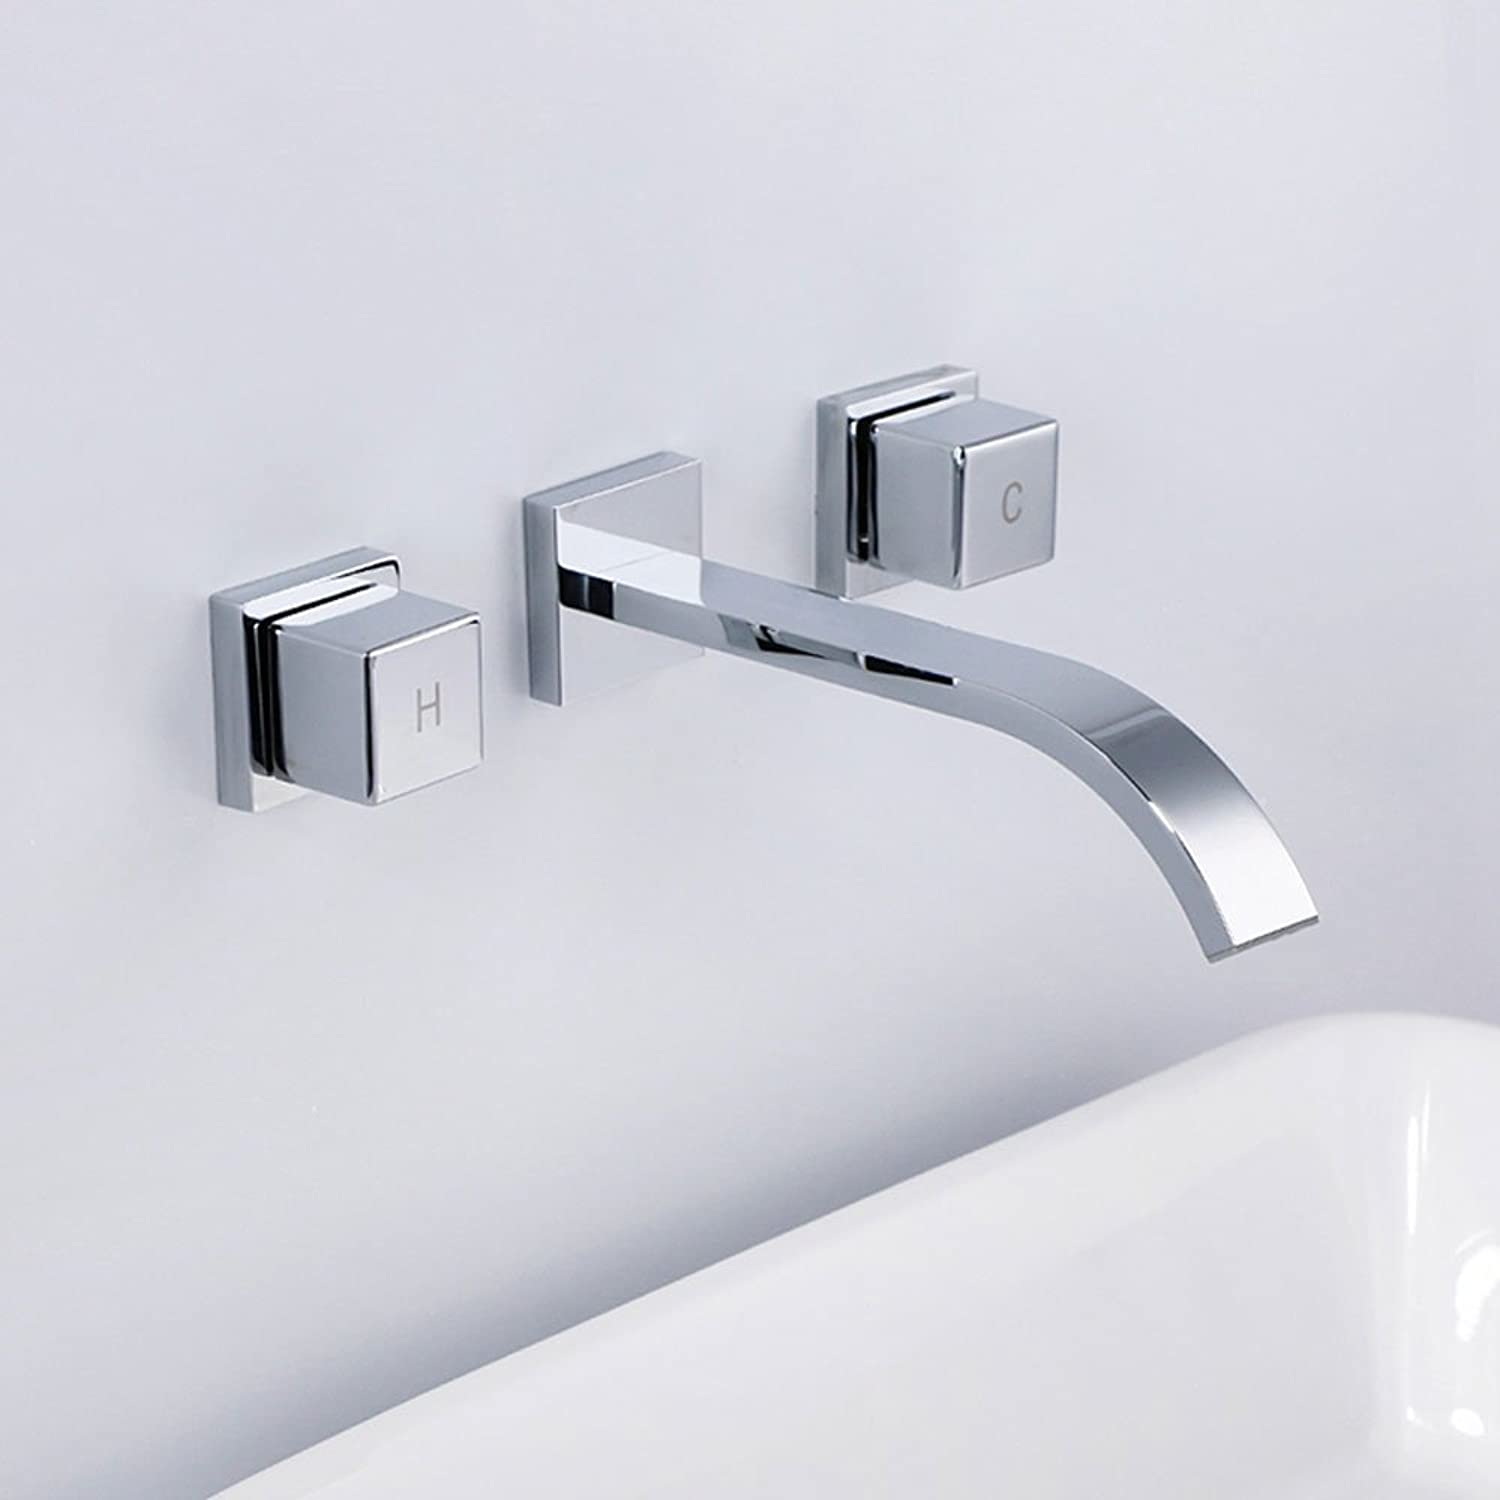 CHENGYI Home Modern High-end Fashion Faucet Waterfall in Wall Basin Mixer